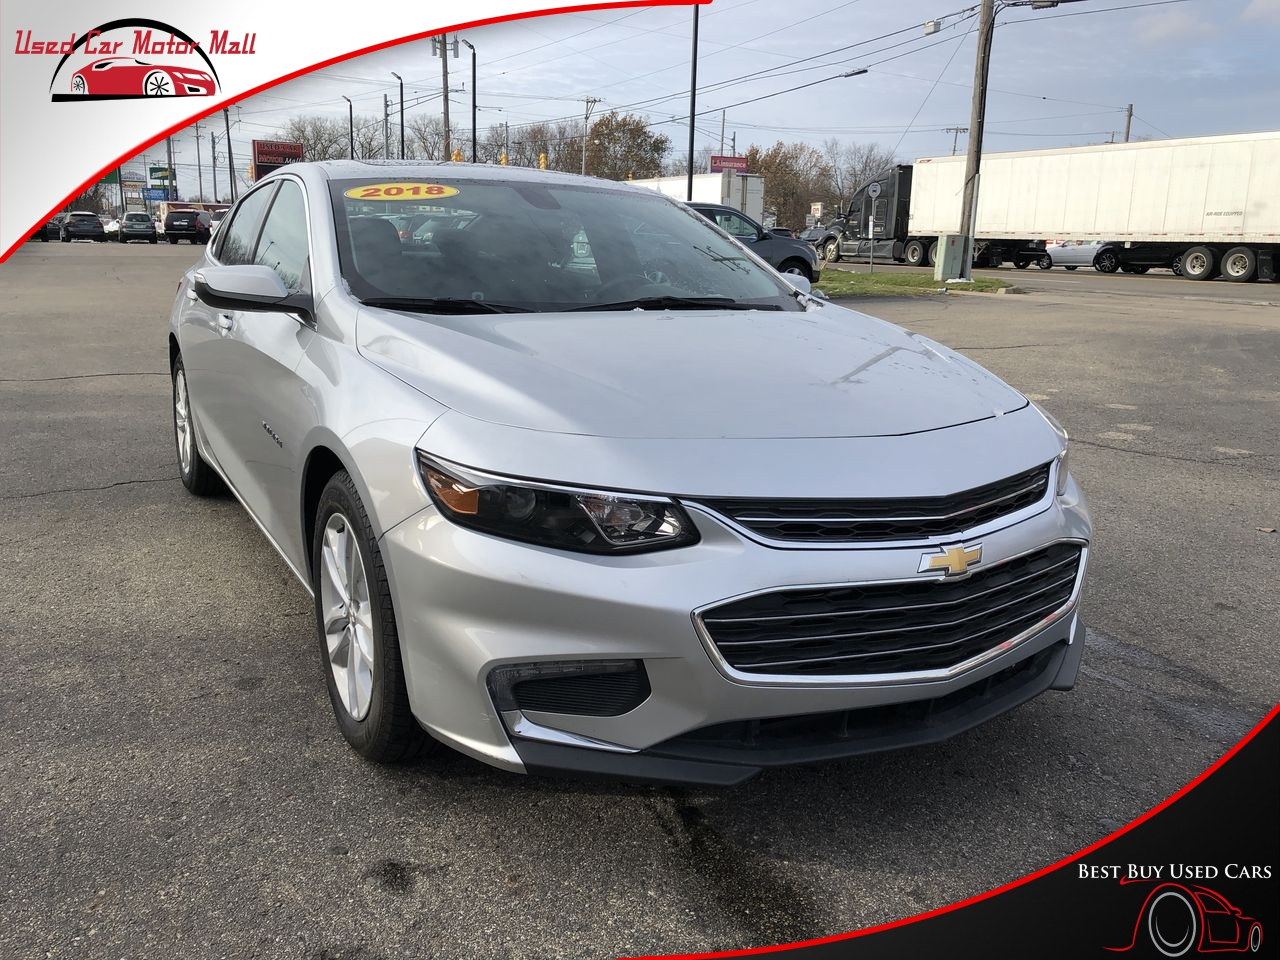 2016 Chevrolet Malibu Limited LT, 142713, Photo 1